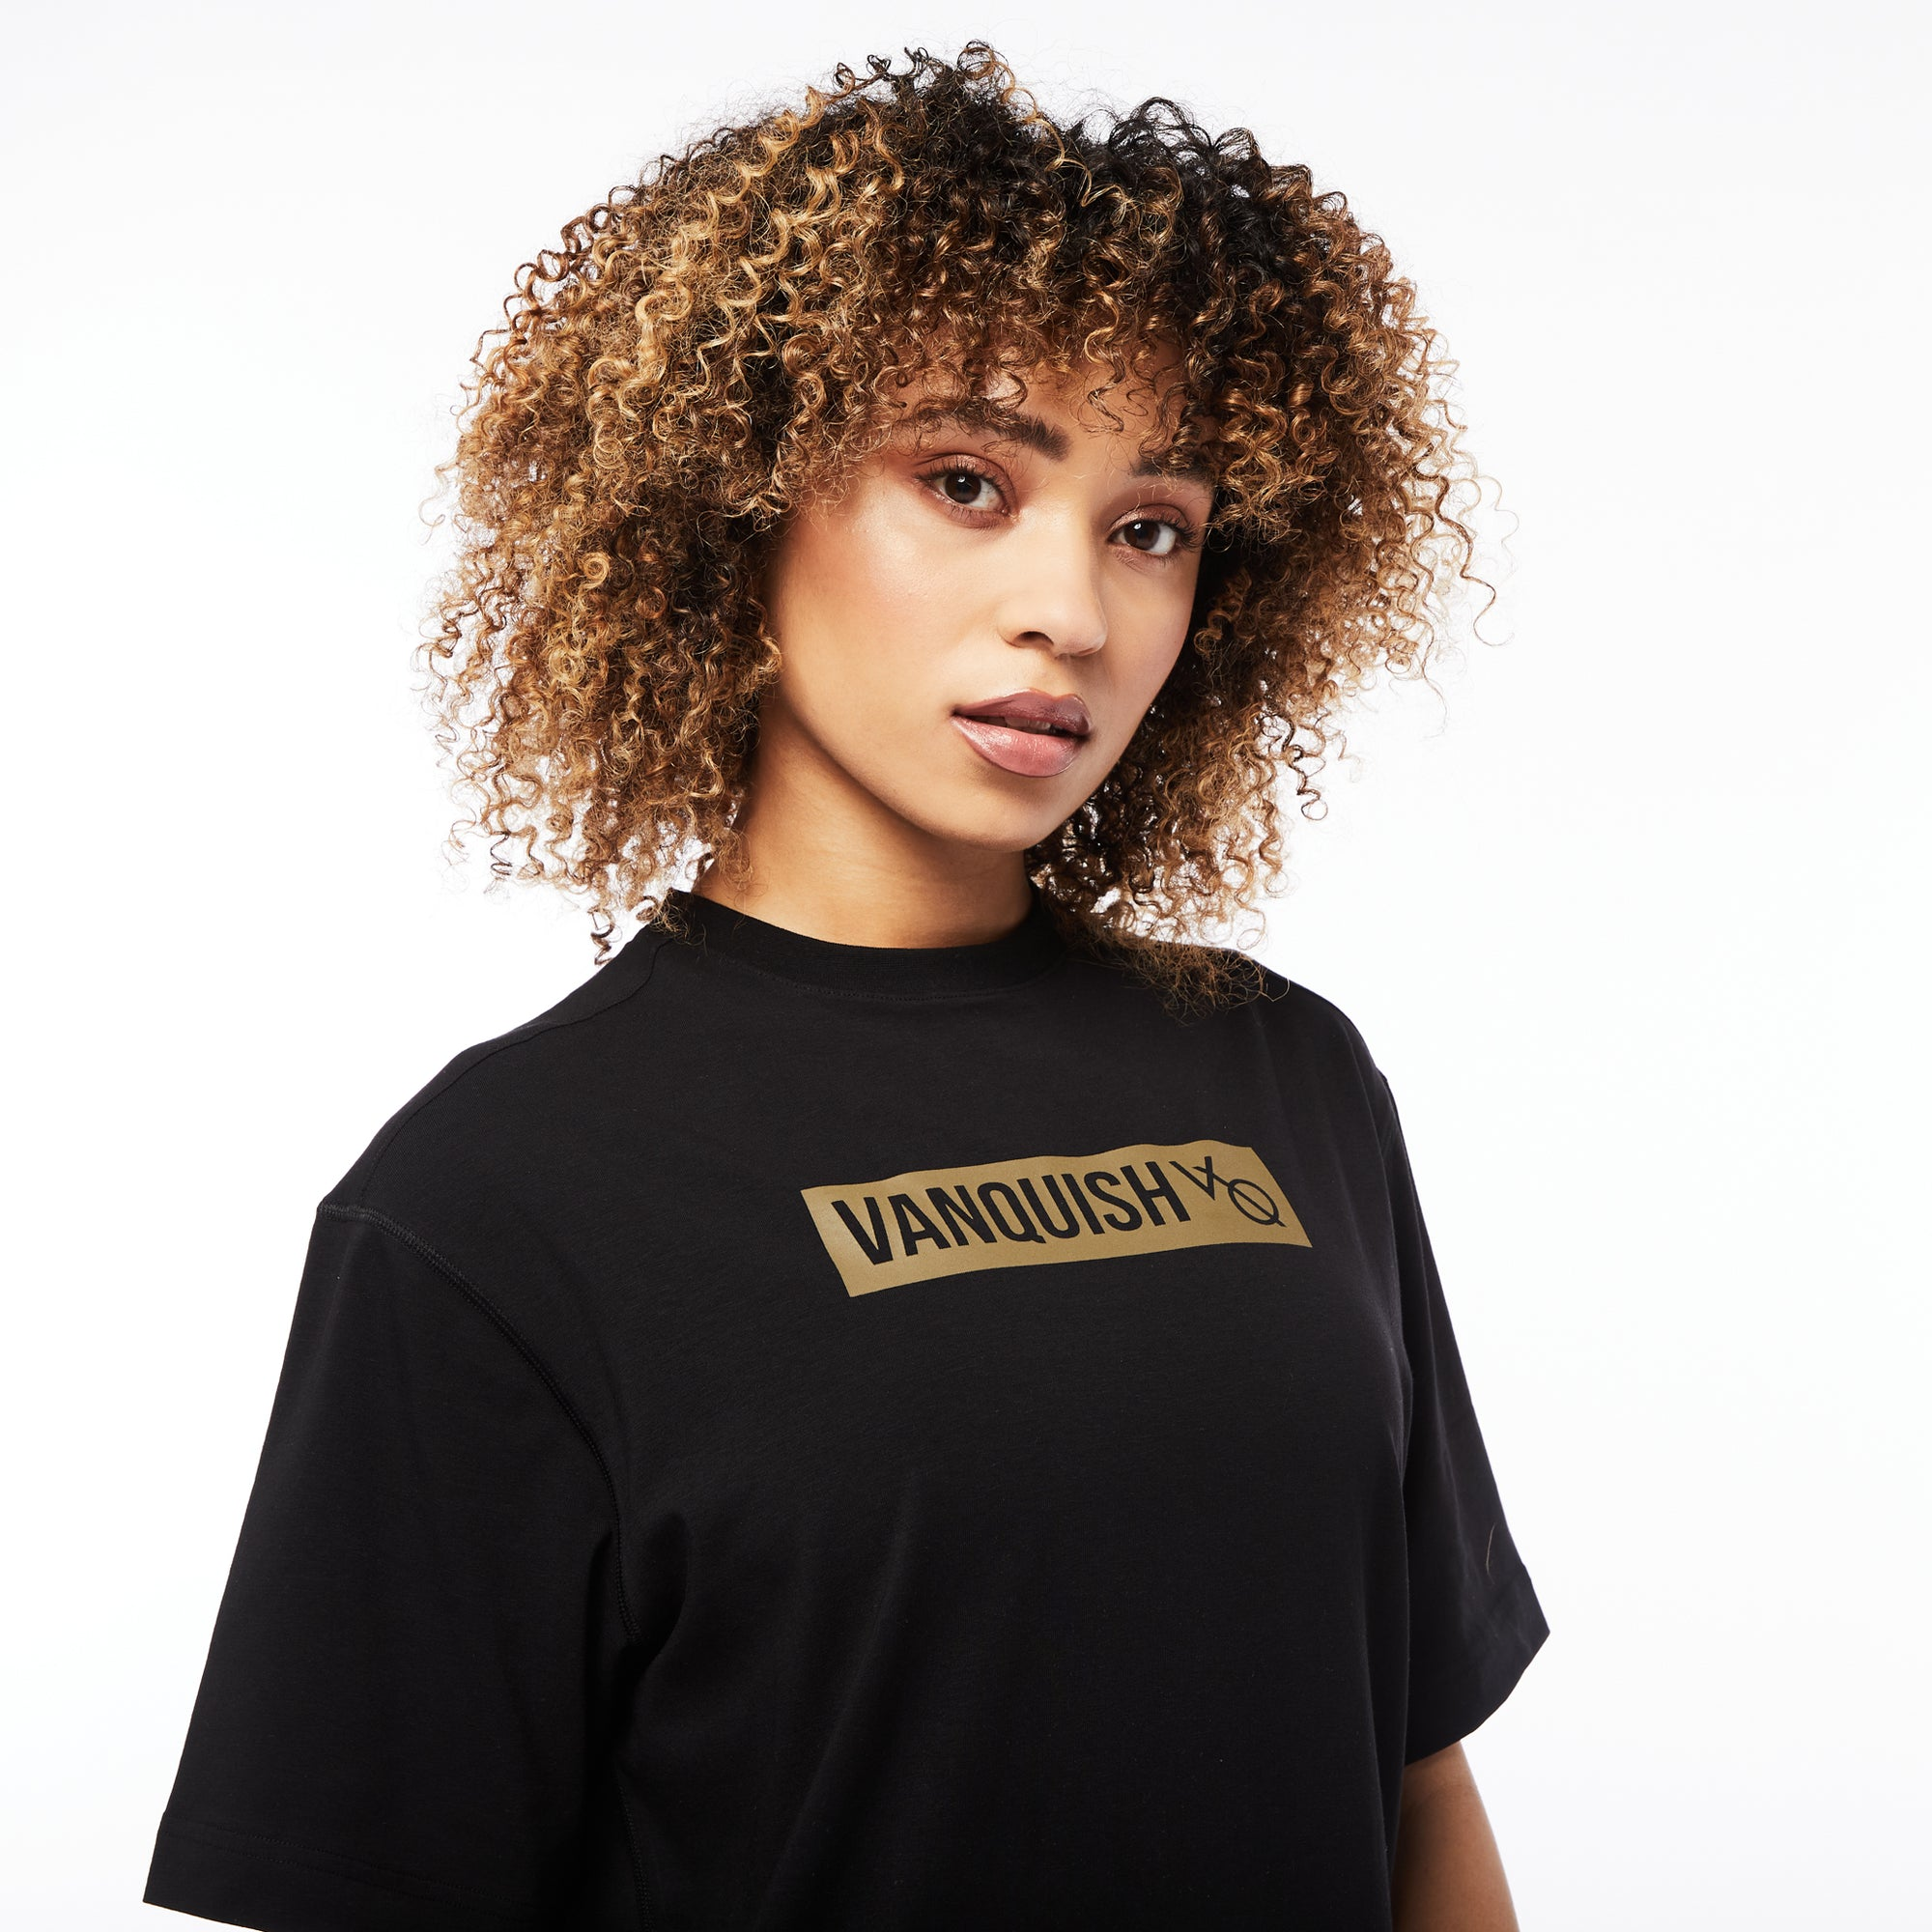 Vanquish Unisex Box Logo Olive on Black Oversized T Shirt